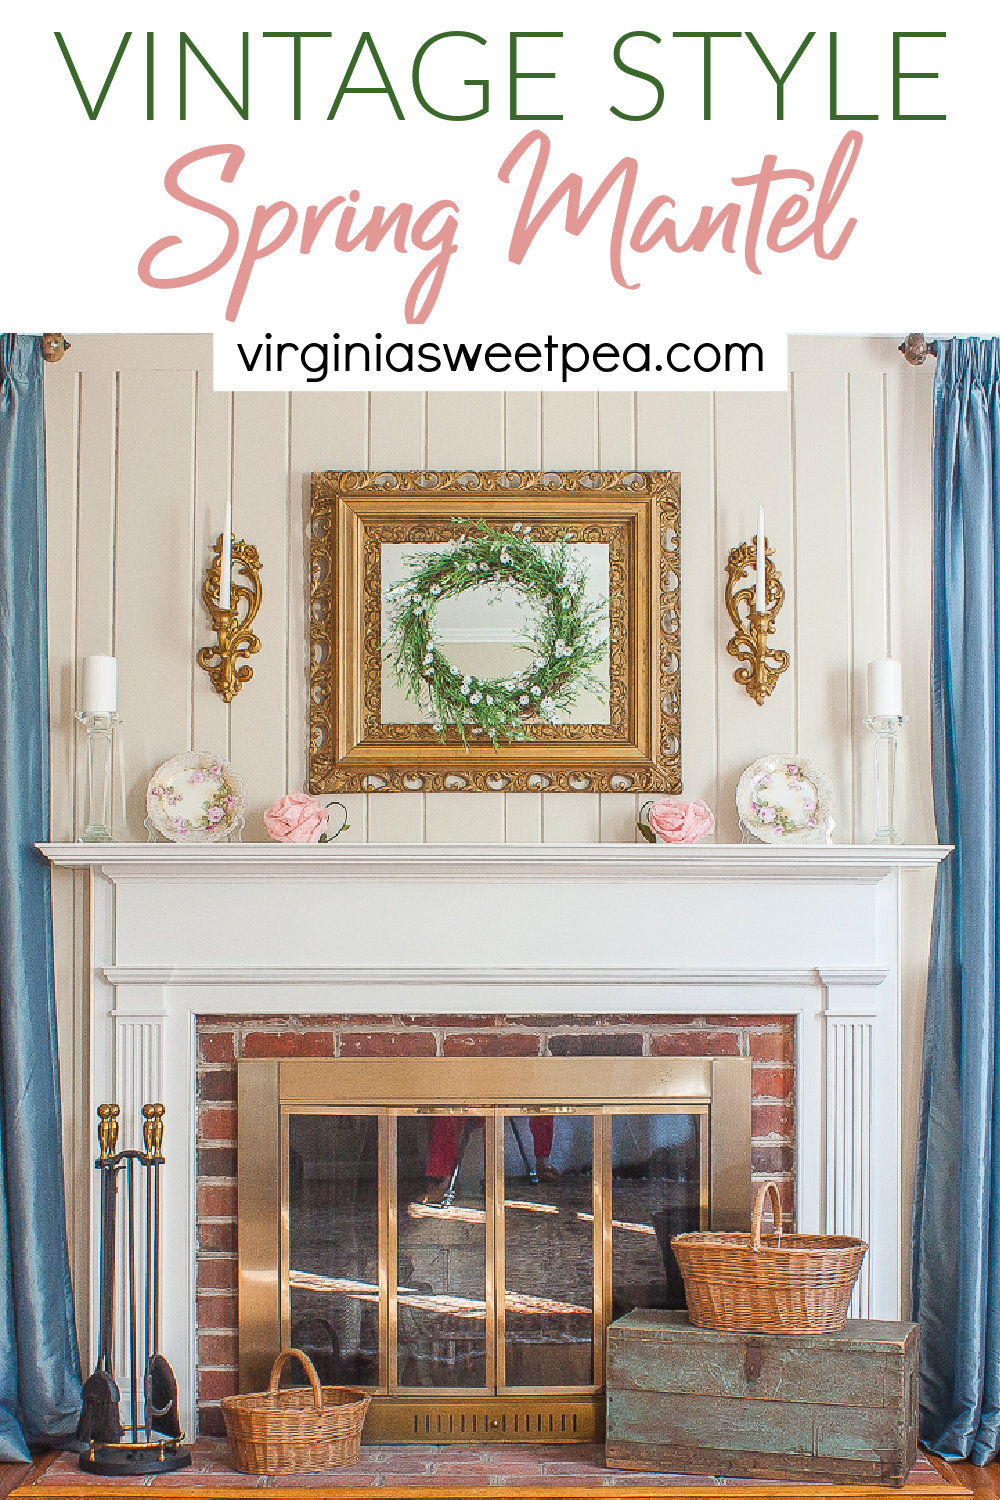 See a mantel decorated for spring with vintage style.  A handmade wreath, pink crepe paper flowers, dishes, white candles, and vintage baskets were used to decorate this mantel for spring.  Don't miss seeing this mantel plus those shared by a talented group of home decor bloggers.   via @spaula